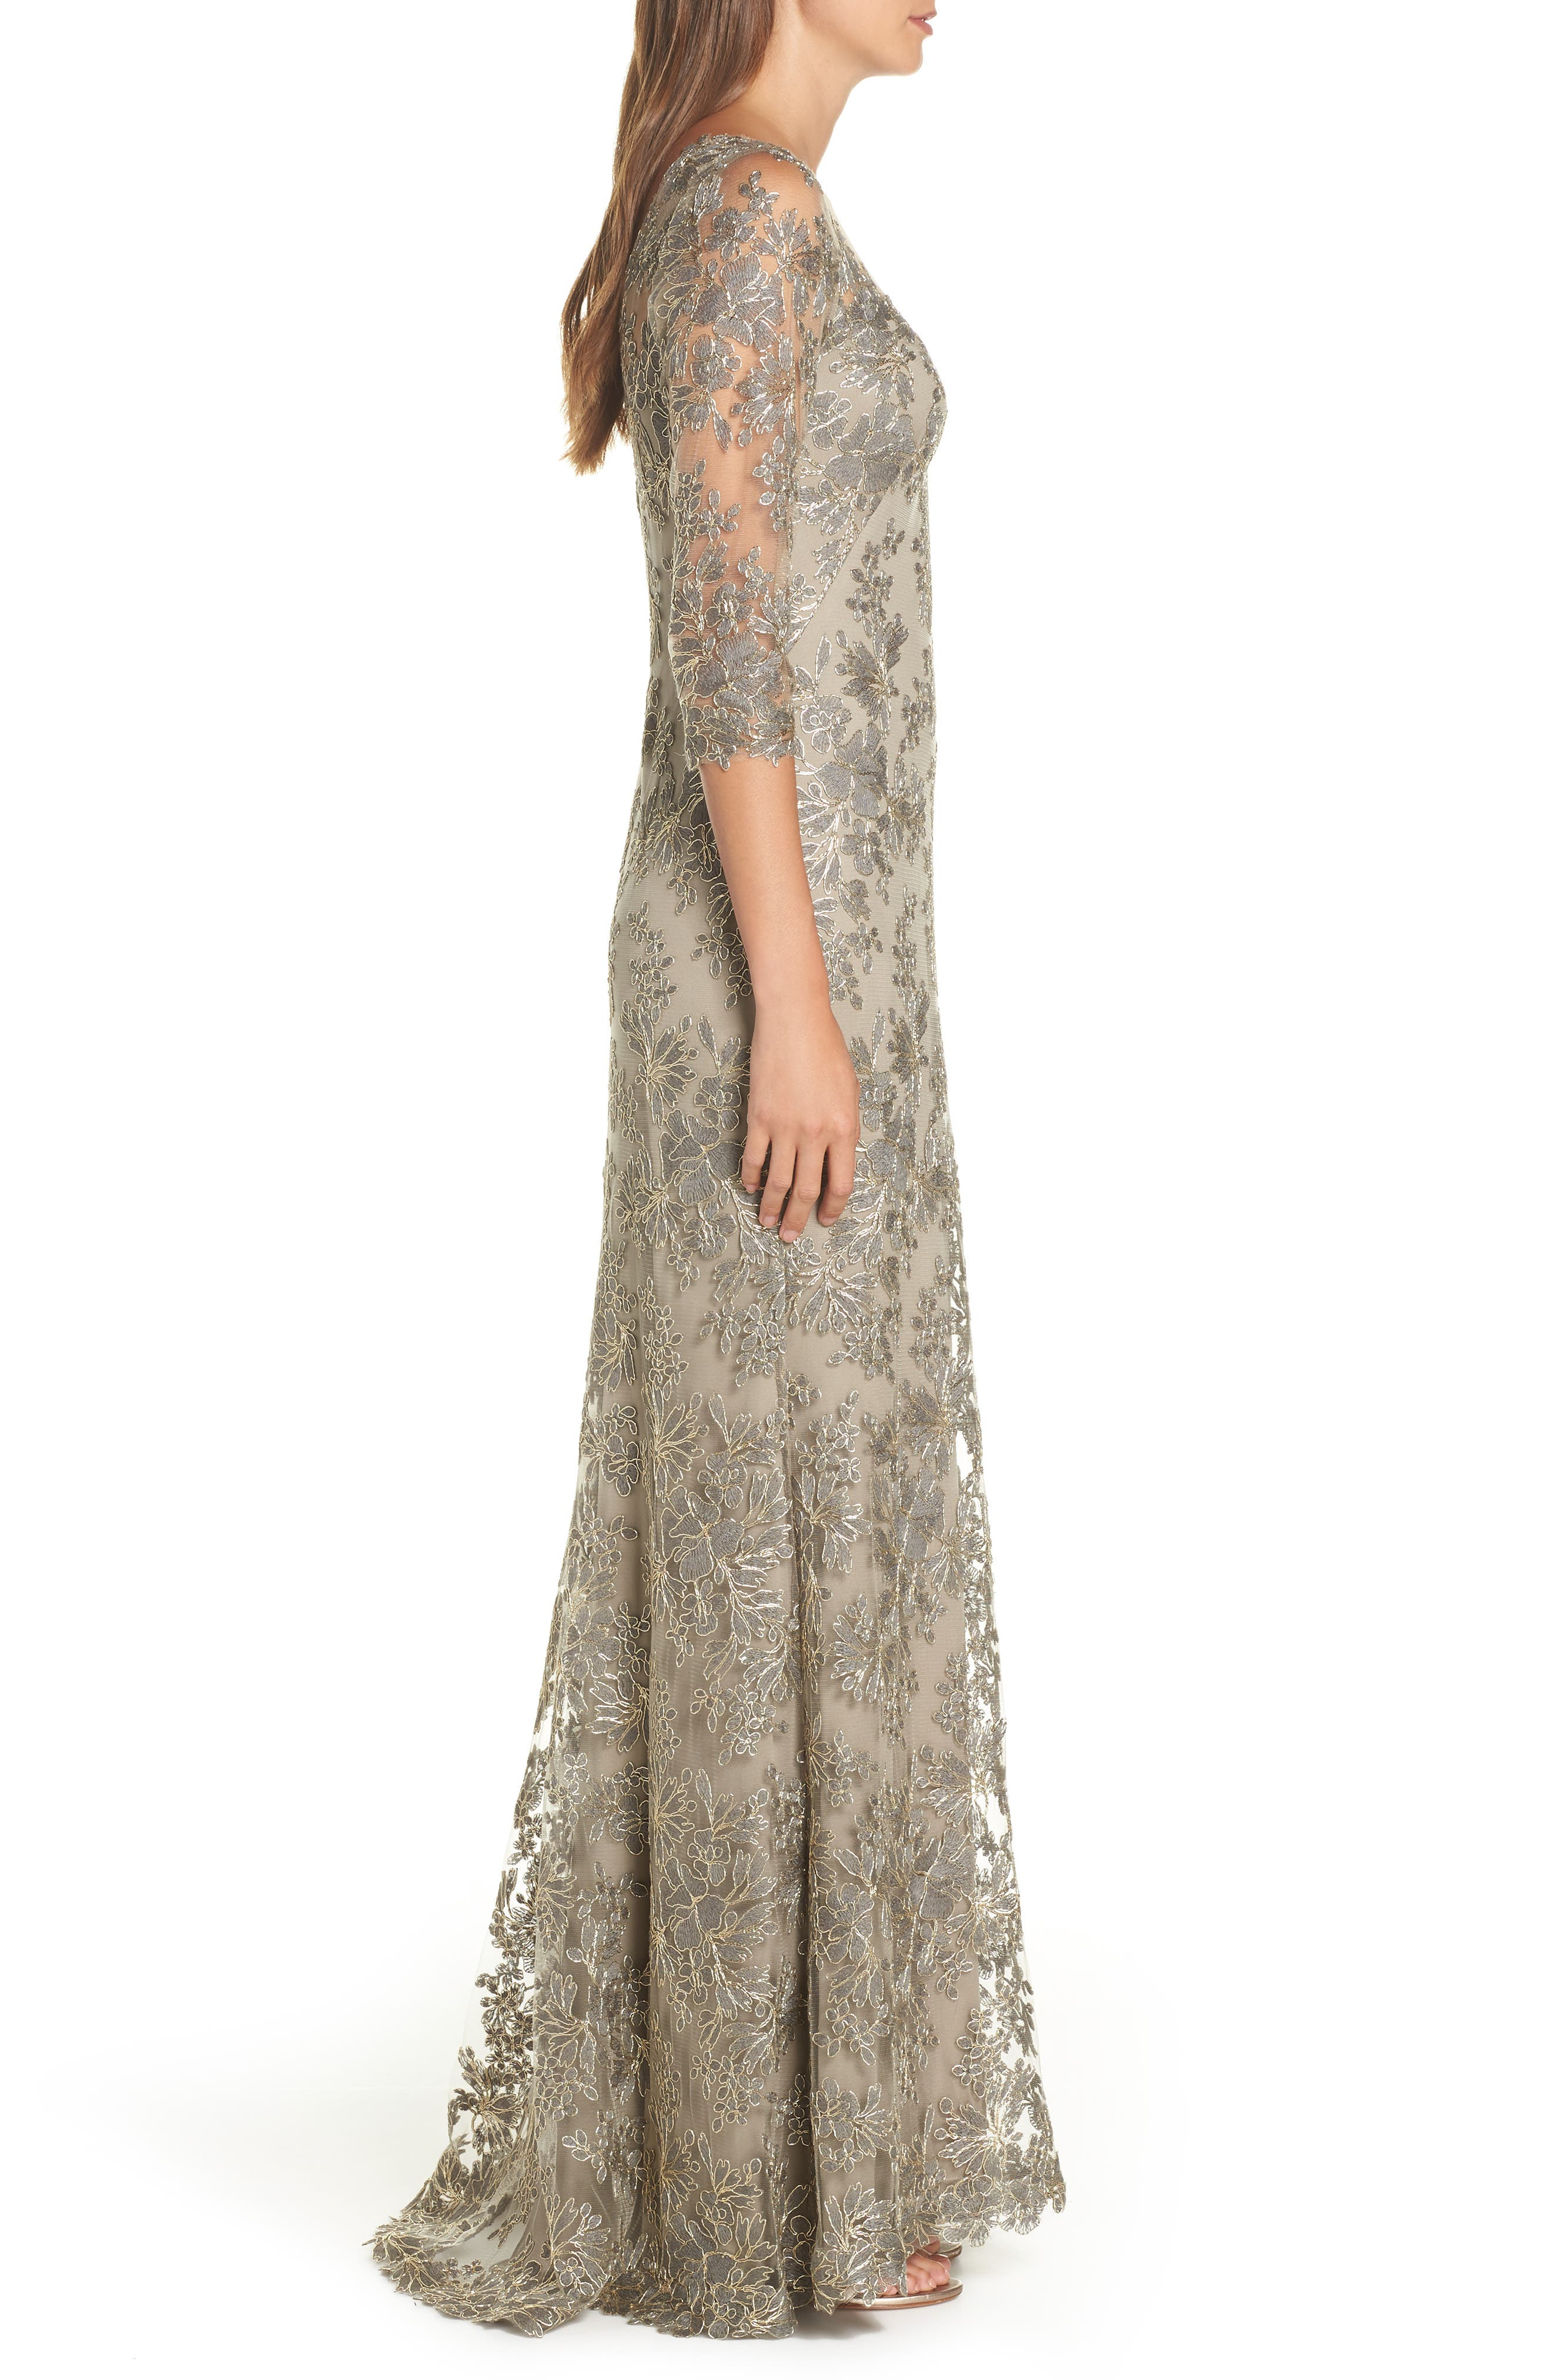 TADASHI SHOJI, Corded Embroidered Lace Gown, Alternate thumbnail 4, color, SMOKE PEARL